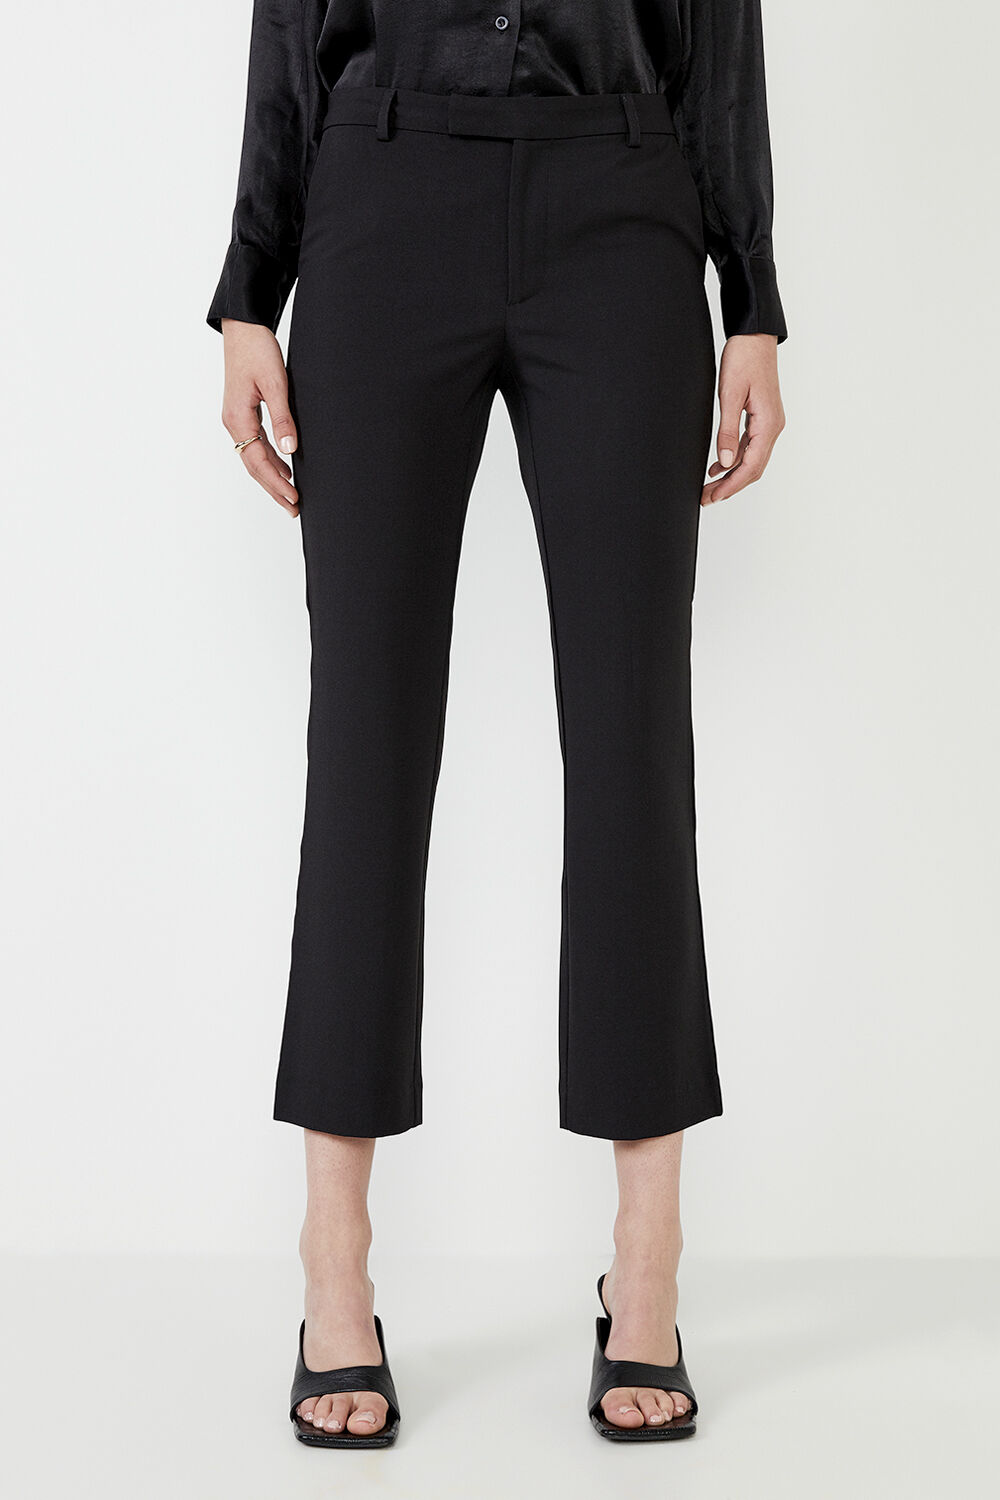 LEIA TROUSER  in colour CAVIAR